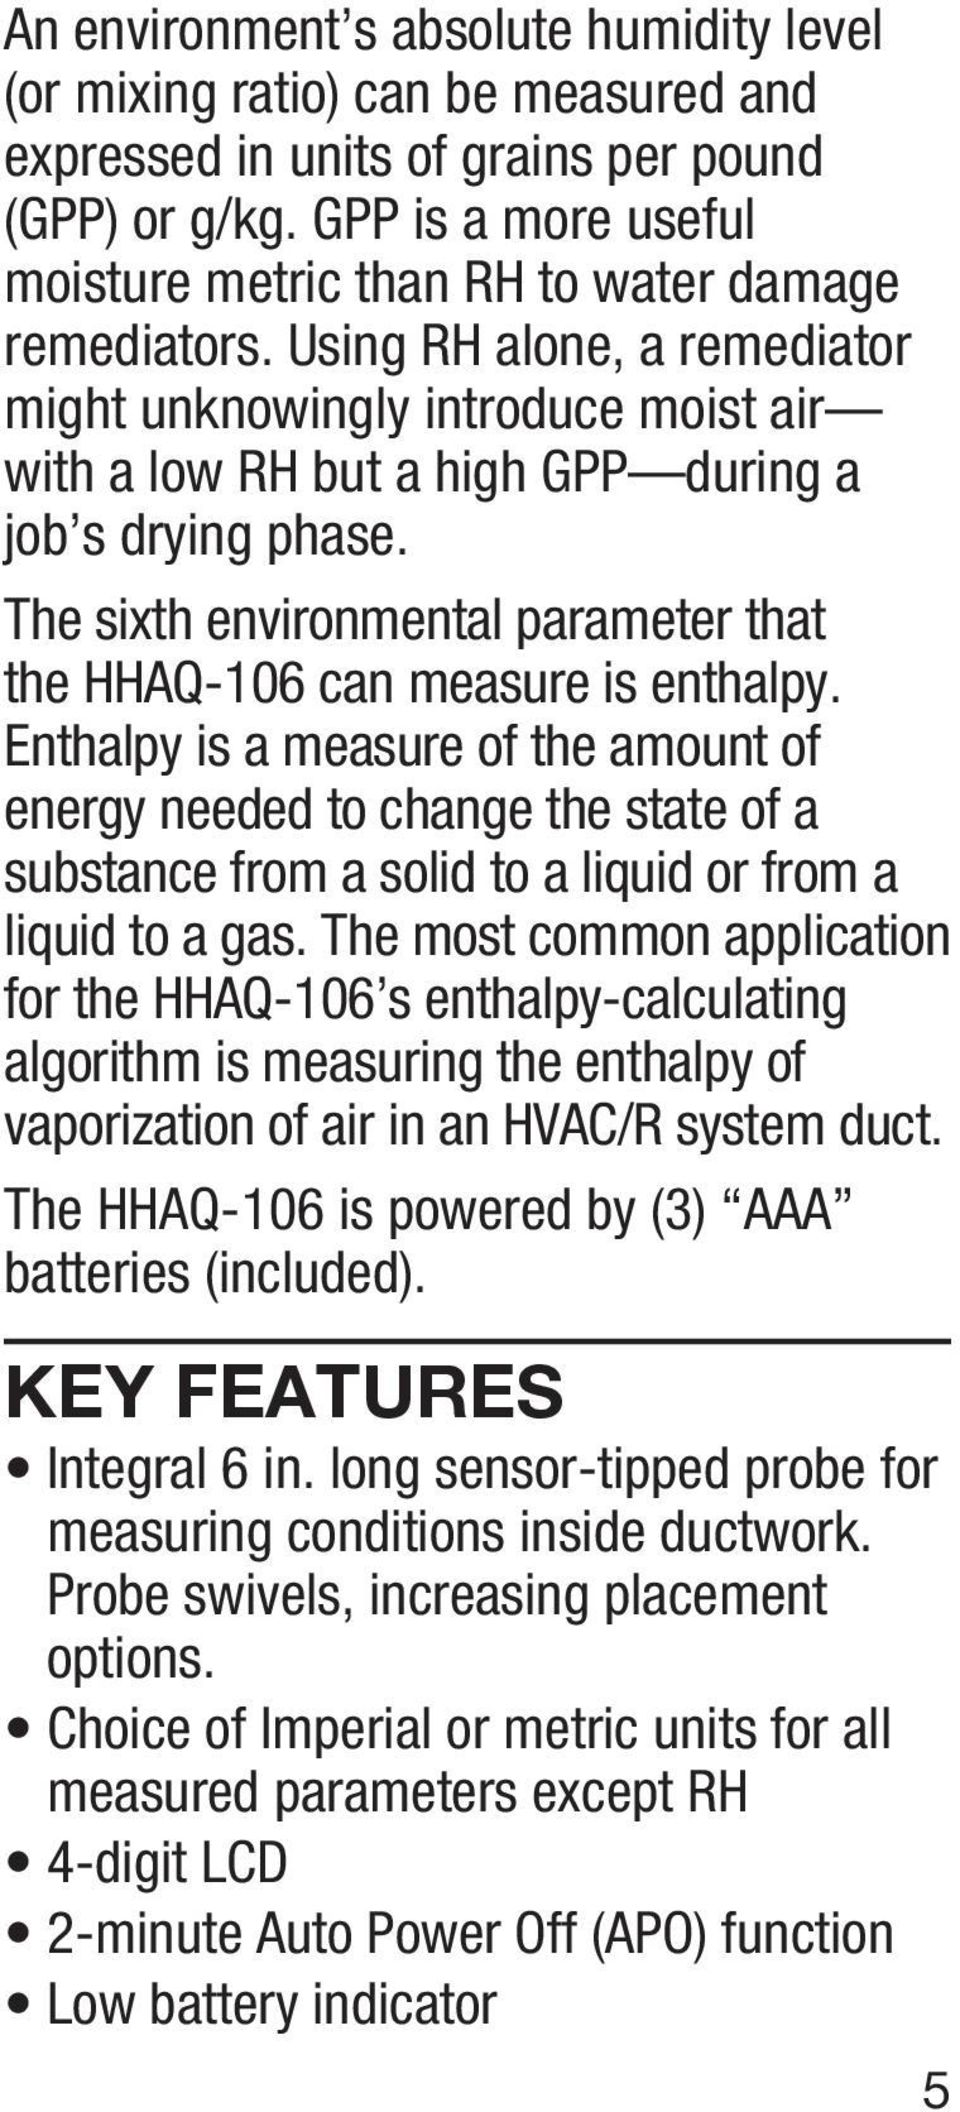 The sixth environmental parameter that the HHAQ-106 can measure is enthalpy.